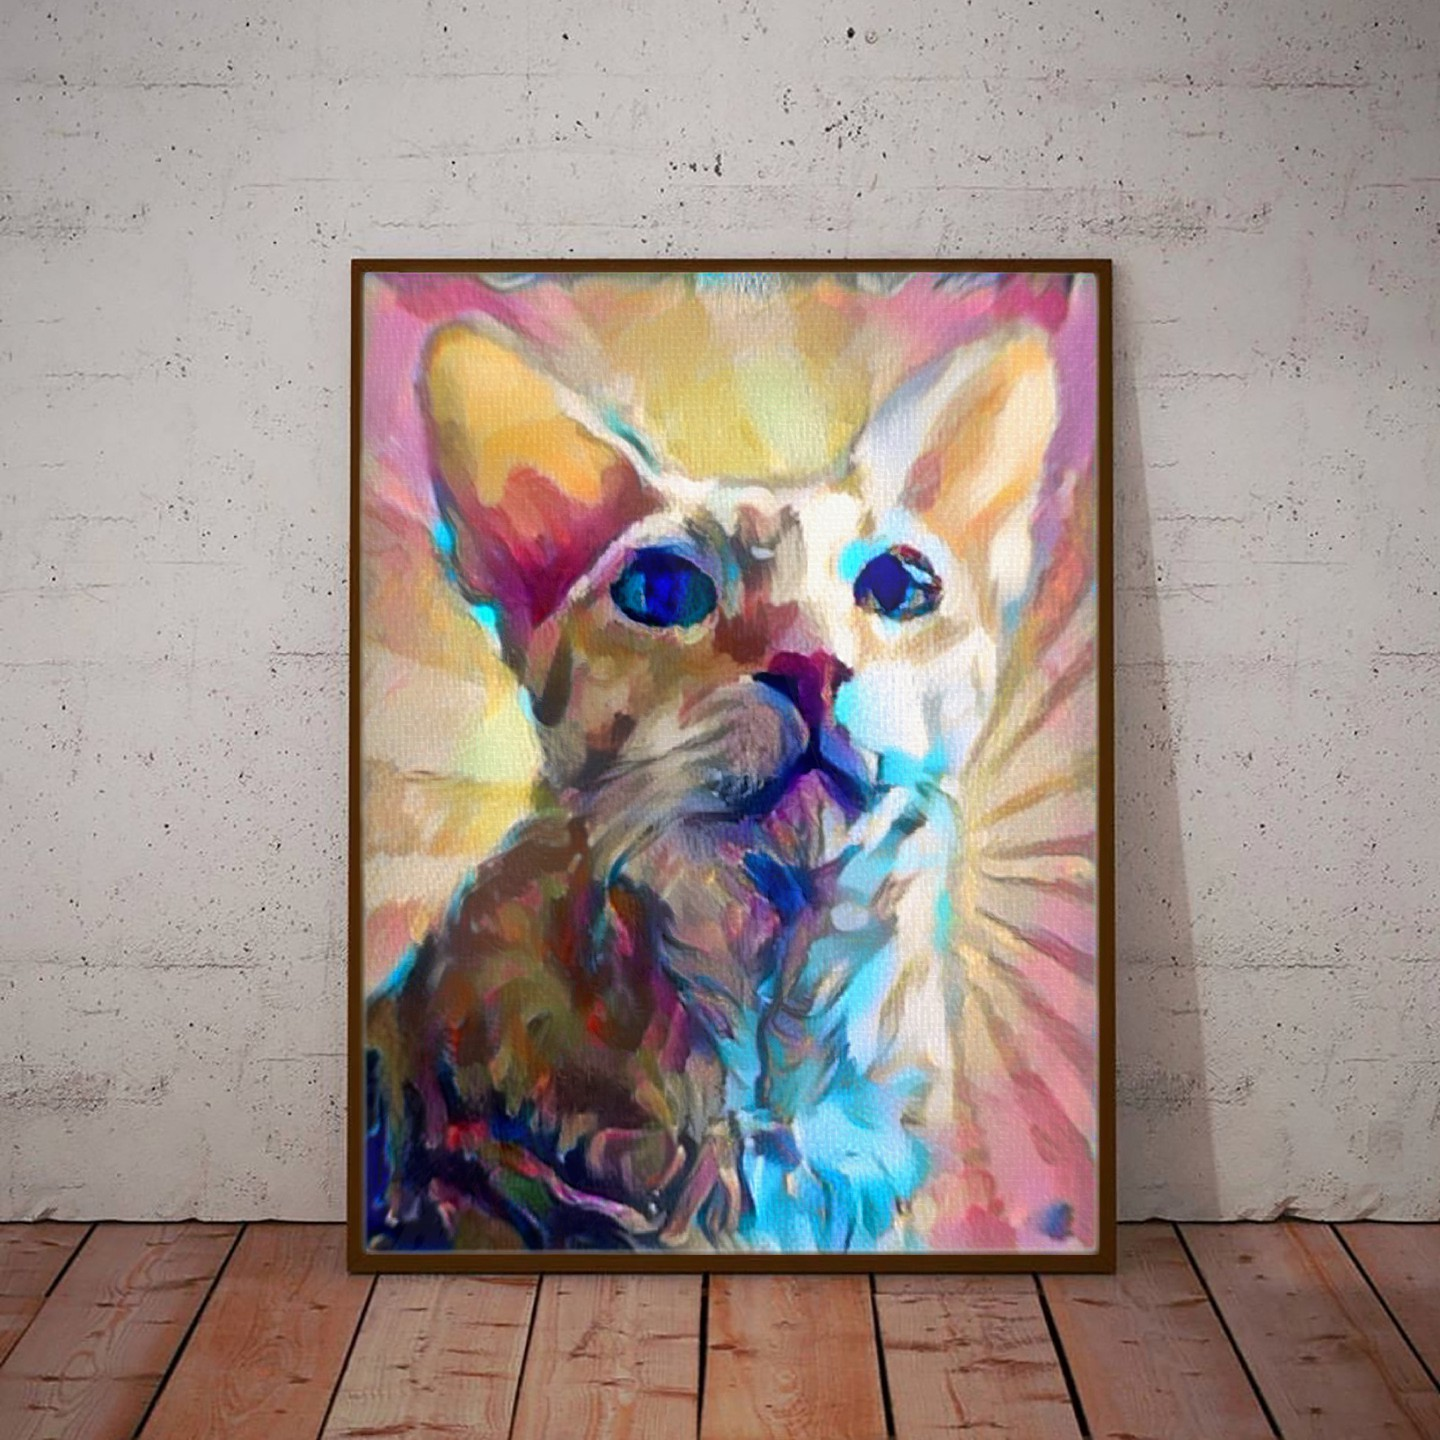 Sunrise Sunset - Creative pet portraits - framed, canvas or poster